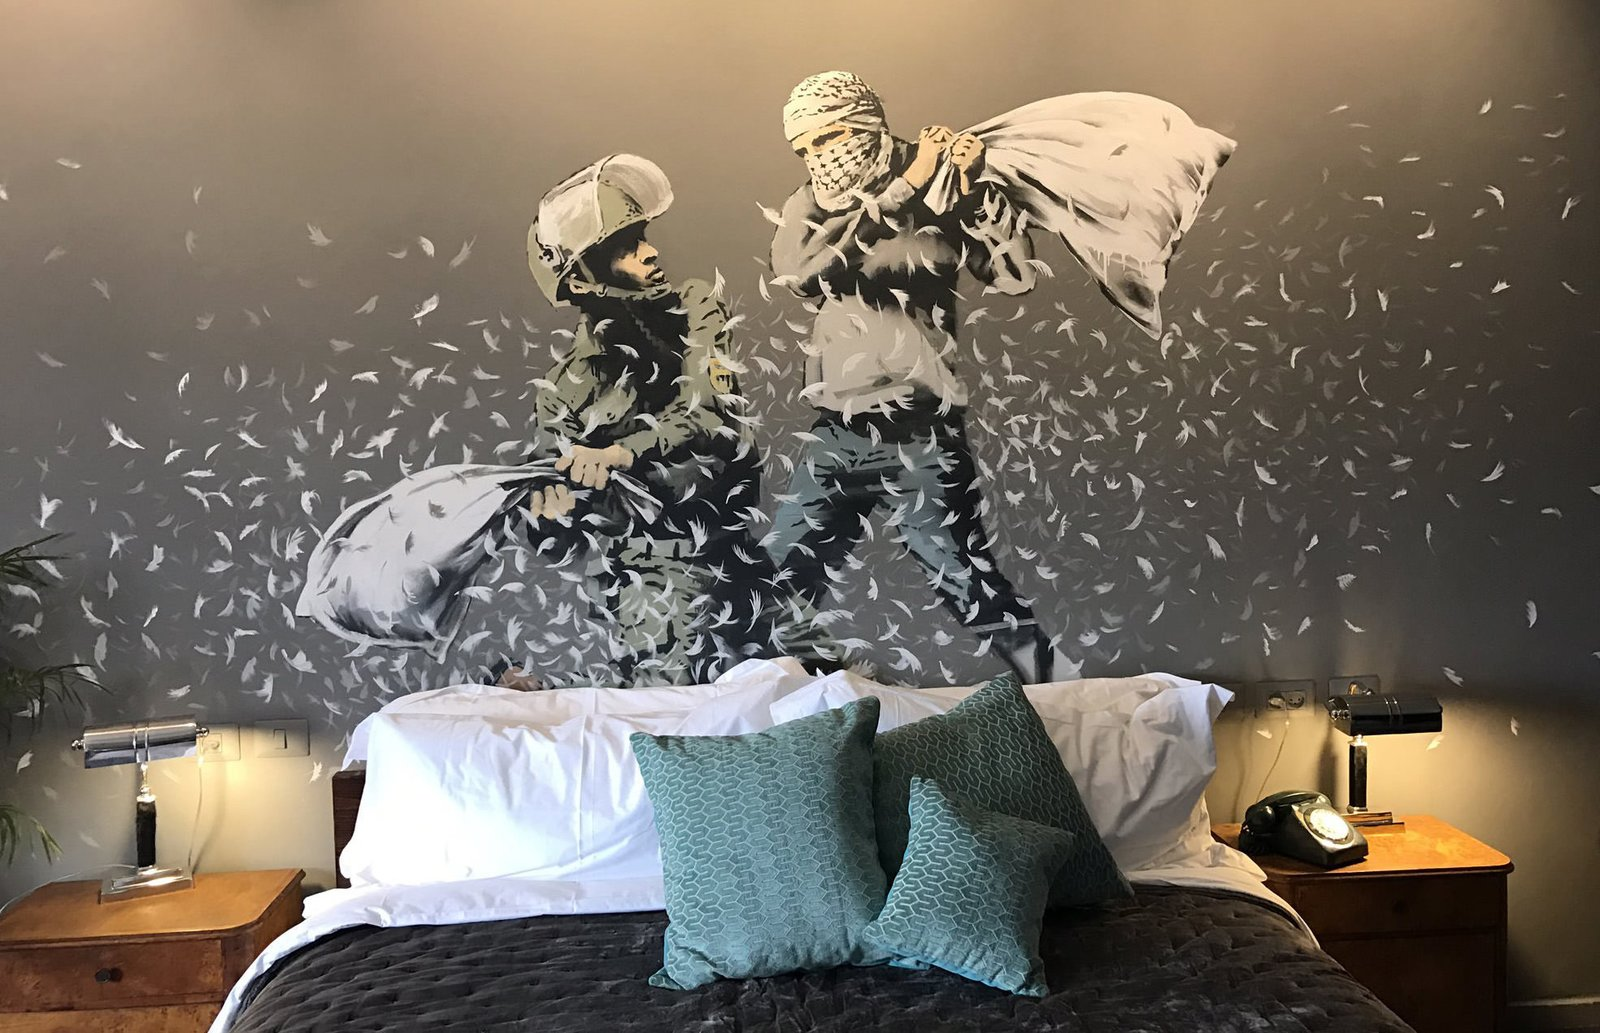 Photo 1 of 6 in Banksy's The Walled Off Hotel